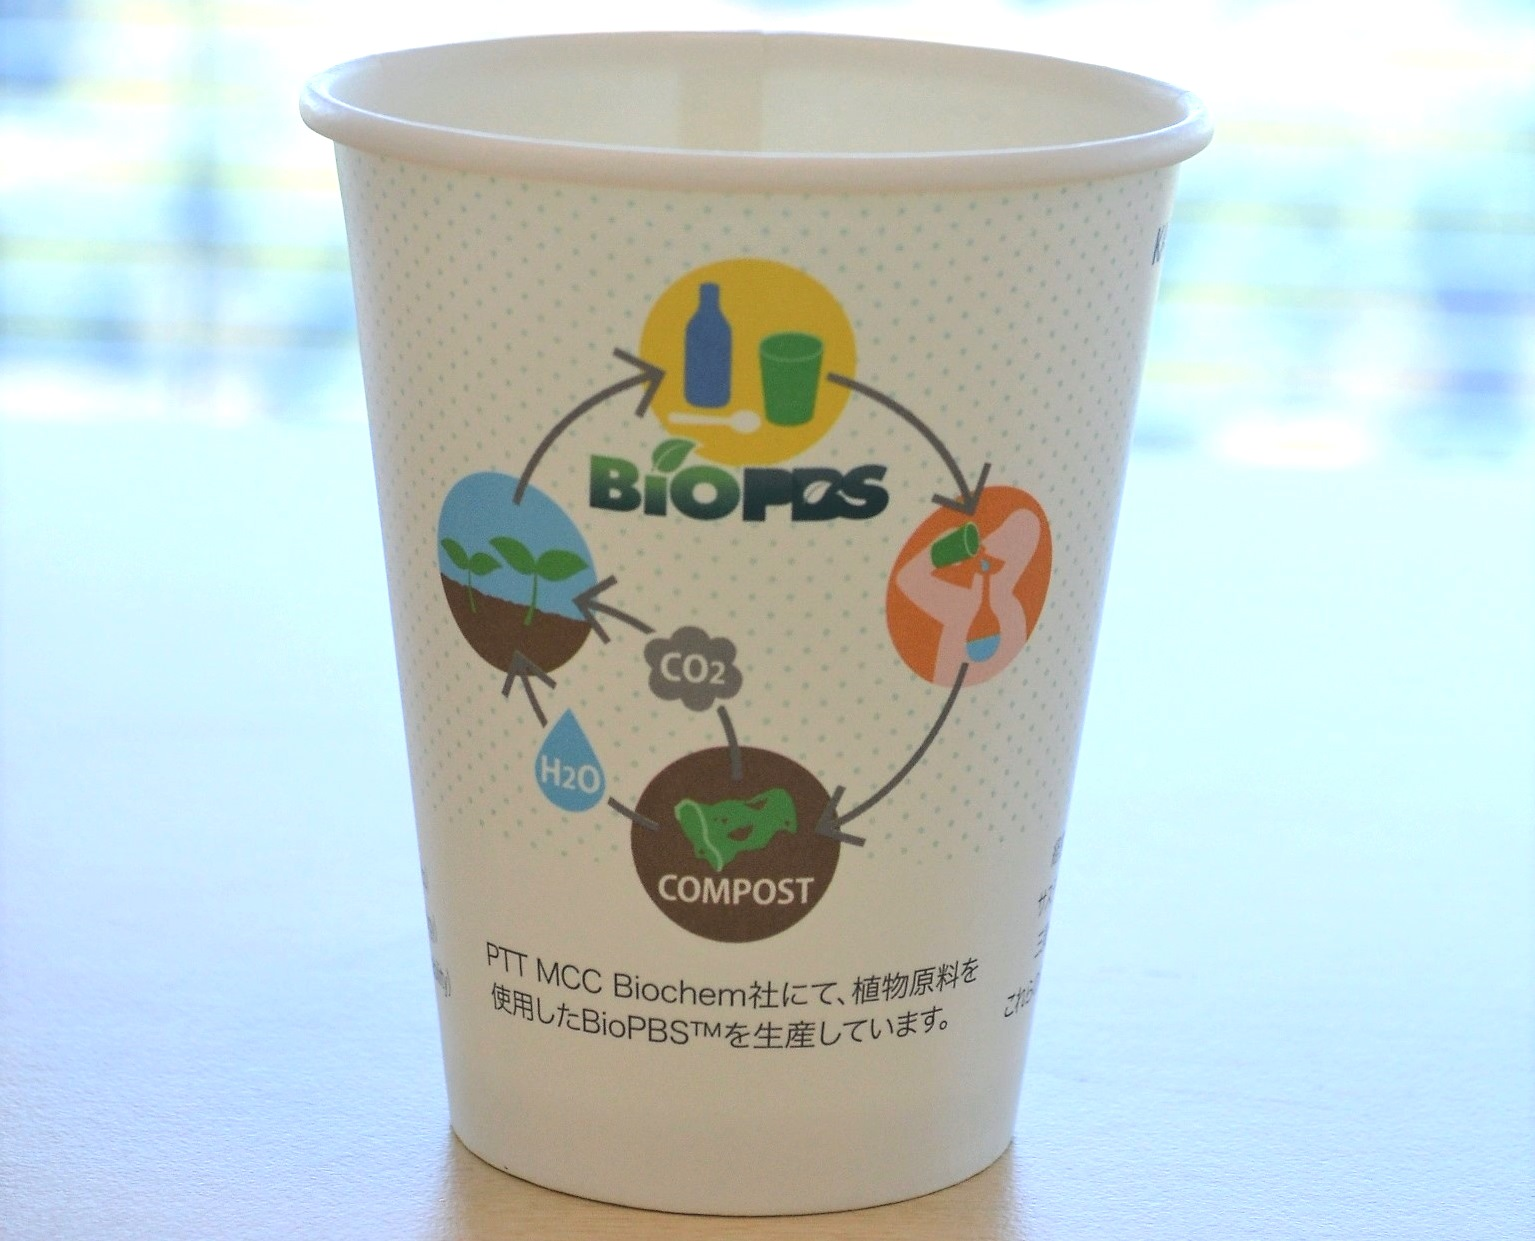 Committed to reducing environmental impact using bioplastics that have new possibilities